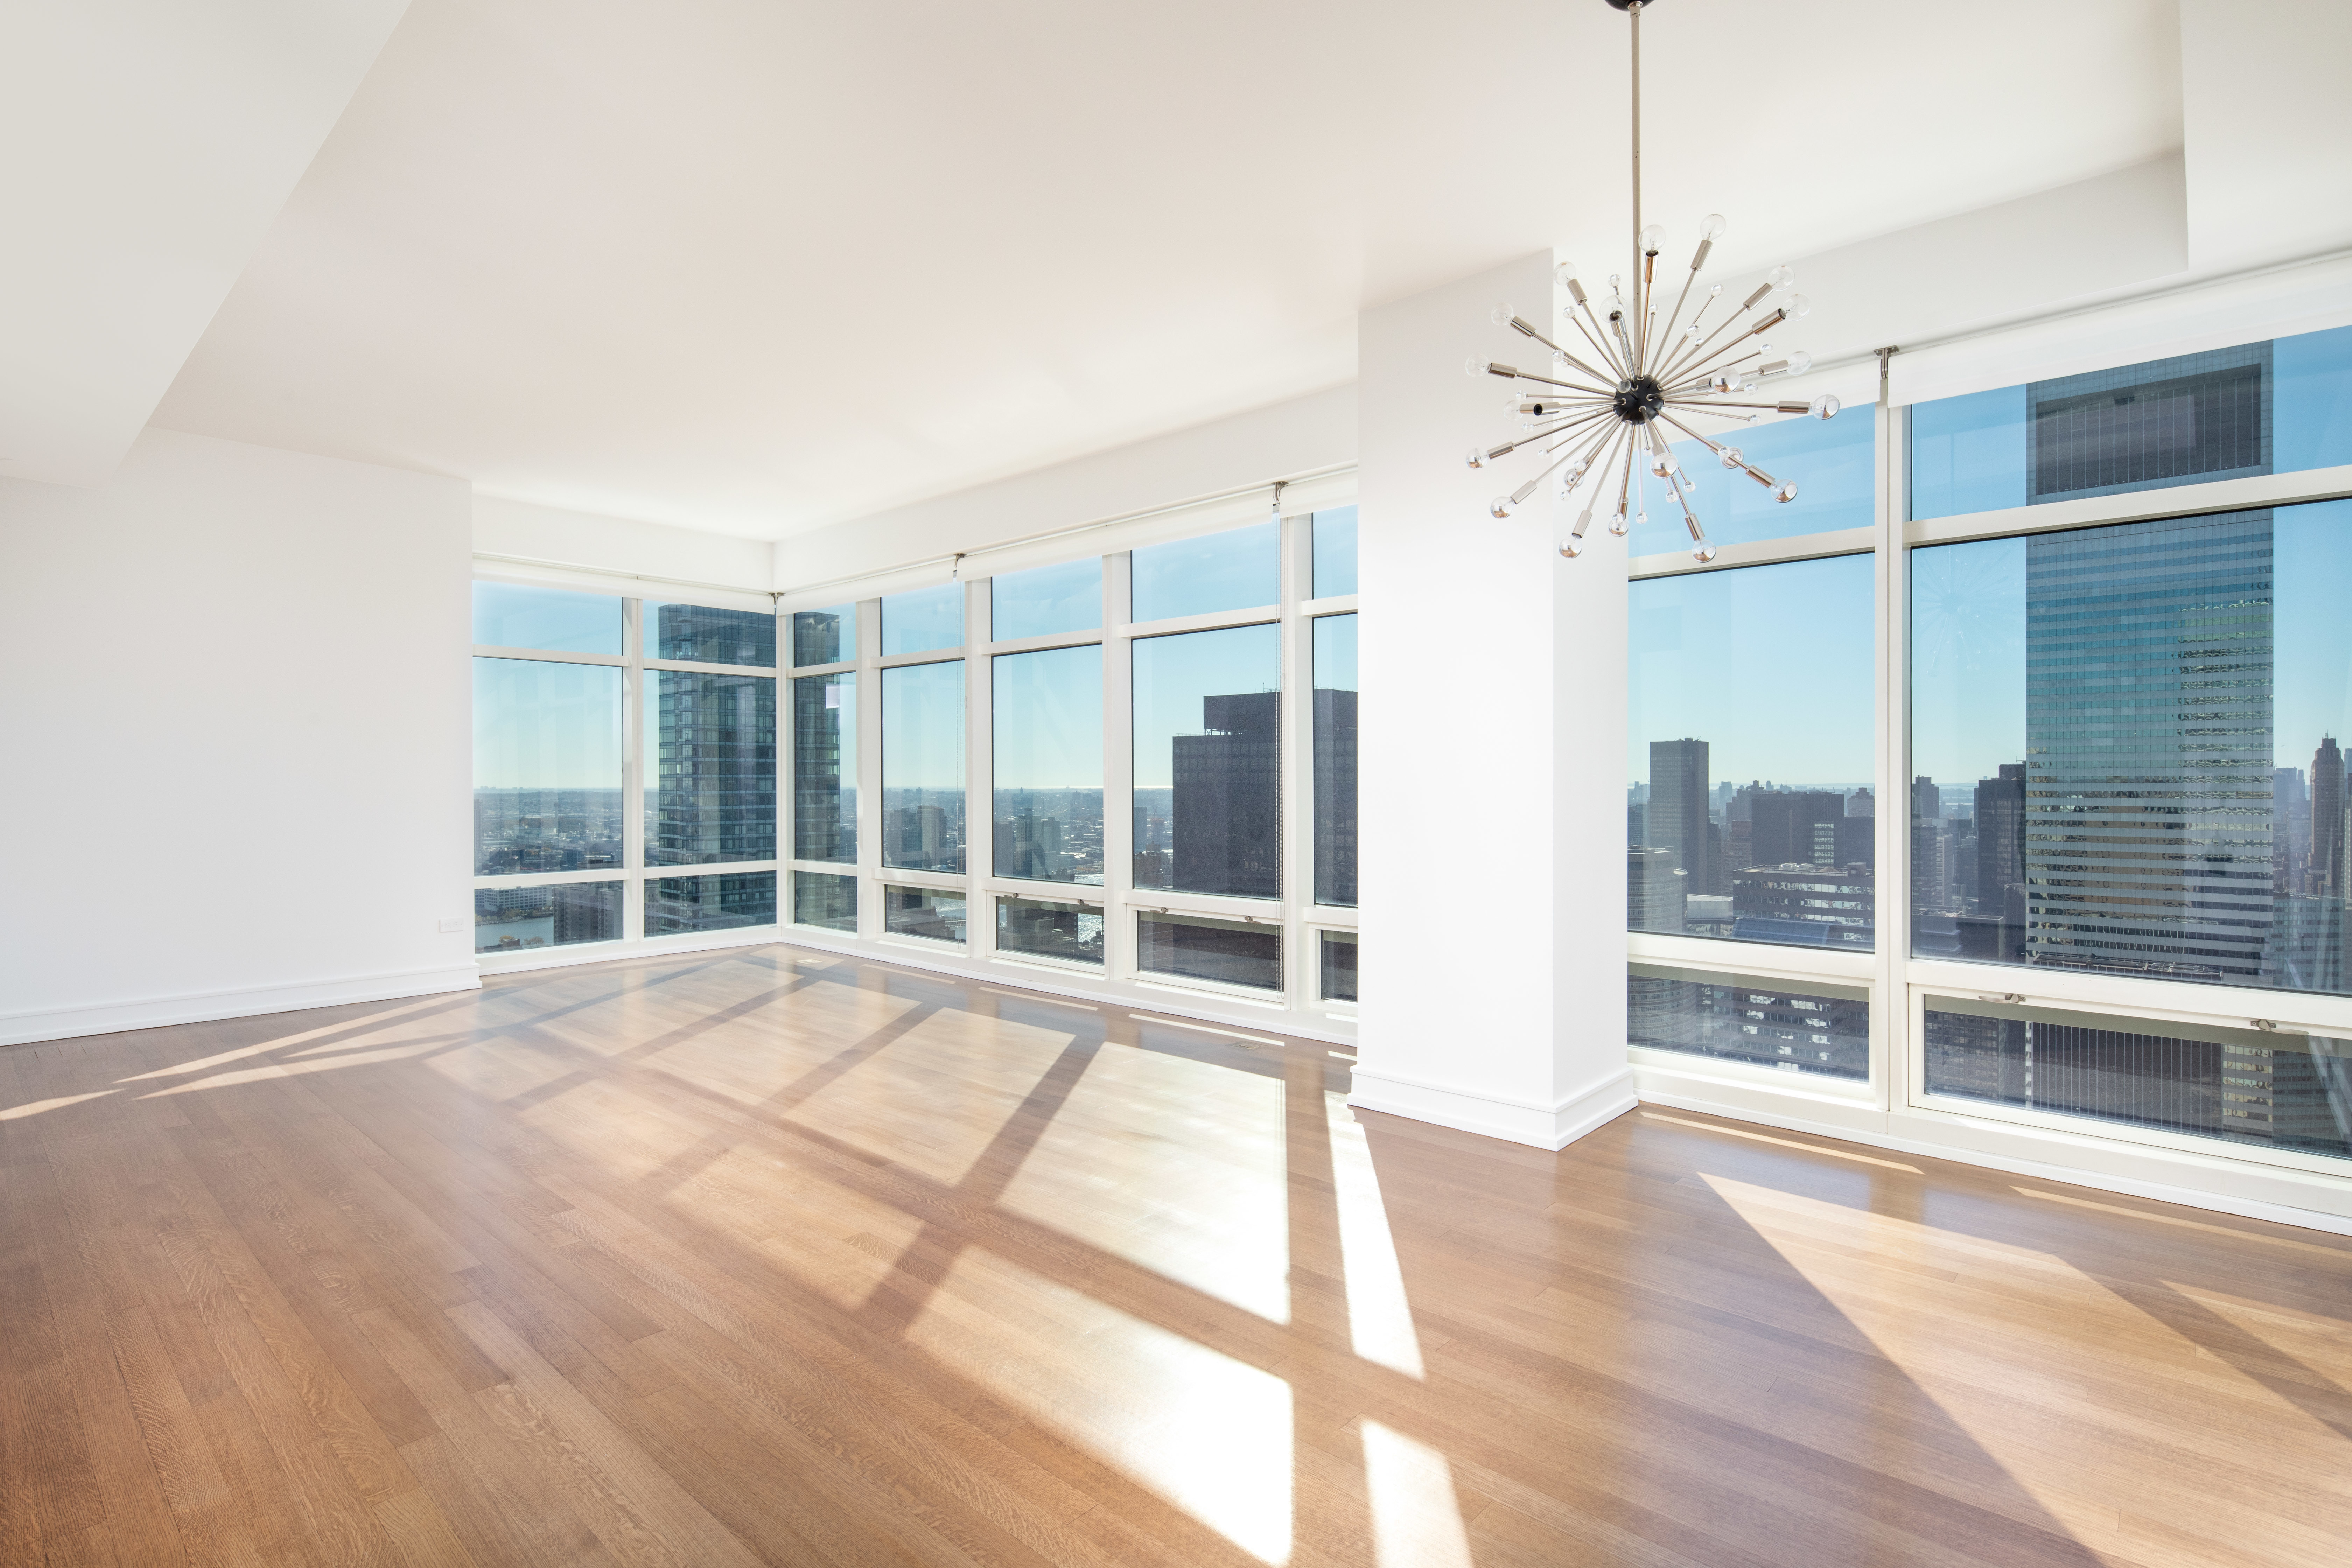 NO BROKER FEE / BROKERS CYOFResidence 38D at One Beacon Court Condominium is a high floor corner two bedrooms, two full bathrooms and a powder room featuring 10-foot ceiling heights, floor-to-ceiling windows, vented washer and dryer in the unit, and beautiful hardwood floors throughout. This over 1,500sqft home offers split bedrooms, a spacious living room with sunny southern and eastern exposures with spectacular open city and East River views. Beautiful kitchen with stone countertops, lacquered cabinetry, top-of-the-line appliances. A master suite features et space including a linen closet and walk-in closet, an elegant marble bathroom with mosaic marble floor, white marble vanity with double sink, soaking tub, separate shower, and generous closet space including large closet, walk-in closet and linen closet. There is a secondary bedroom with open city views, an en-suite bathroom and a large closet.One Beacon Court was designed by the renowned architect, Cesar Pelli, and is a modern classic, with an elliptical-shaped courtyard, inspired by the shape of the Pantheon in Rome. A full-service building with full-time doorman, concierge, and security, on-site resident manager, state-of-the-art fitness room, and lounge on the 29th floor. Located minutes from Central Park, Fifth Avenue, and Madison Avenue fine shopping, dining, and midtown business centers.Available to show Monday through Friday from 10AM to 4PM. No-showing on Saturday and Sunday.